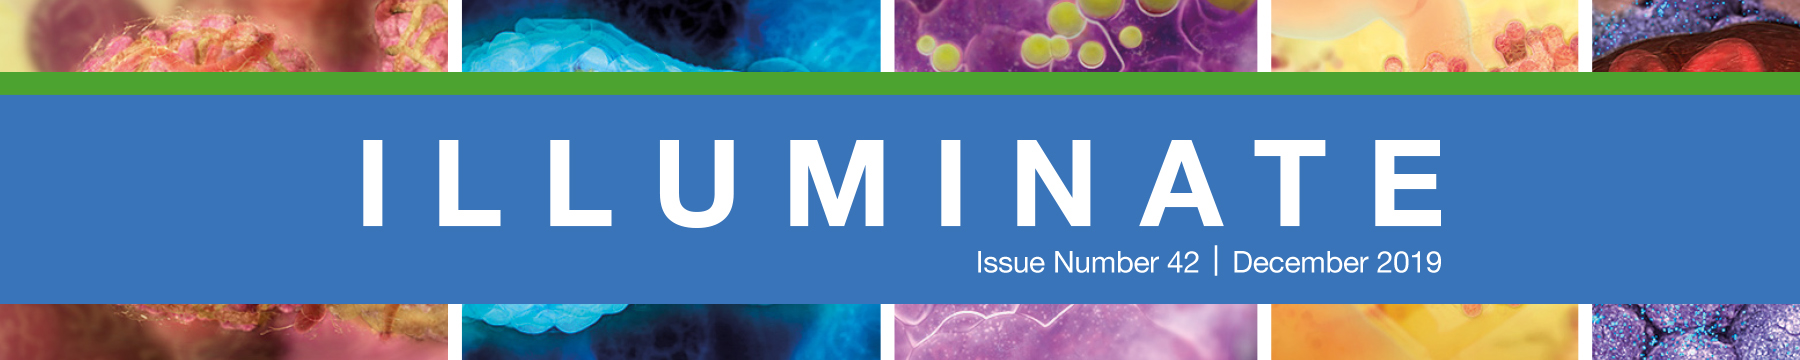 Illuminate newsletter index page, December 2019